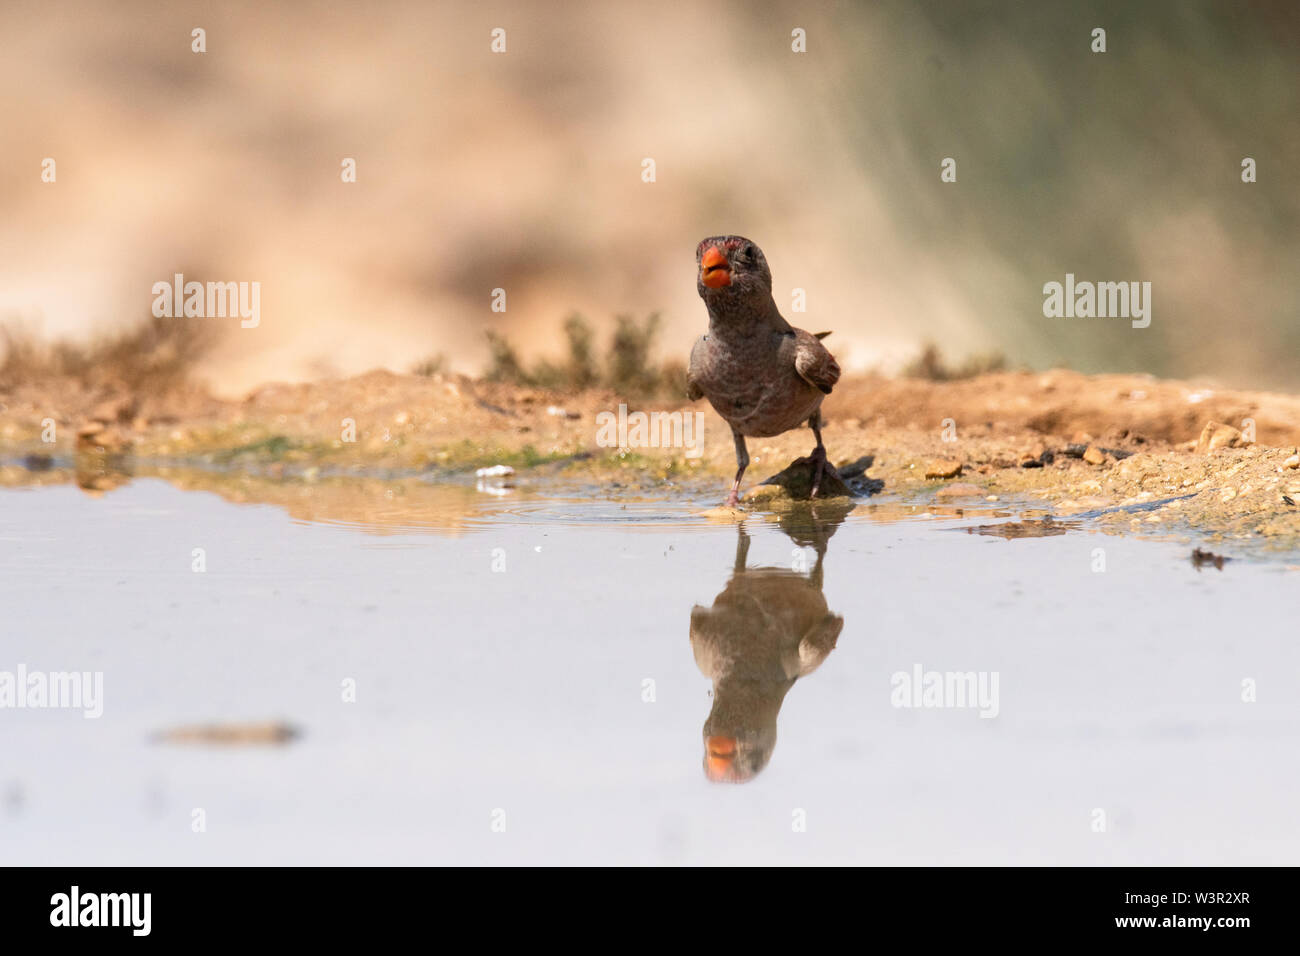 The trumpeter finch (Bucanetes githagineus) near a puddle of water in the Negev desert, israel in June - Stock Image